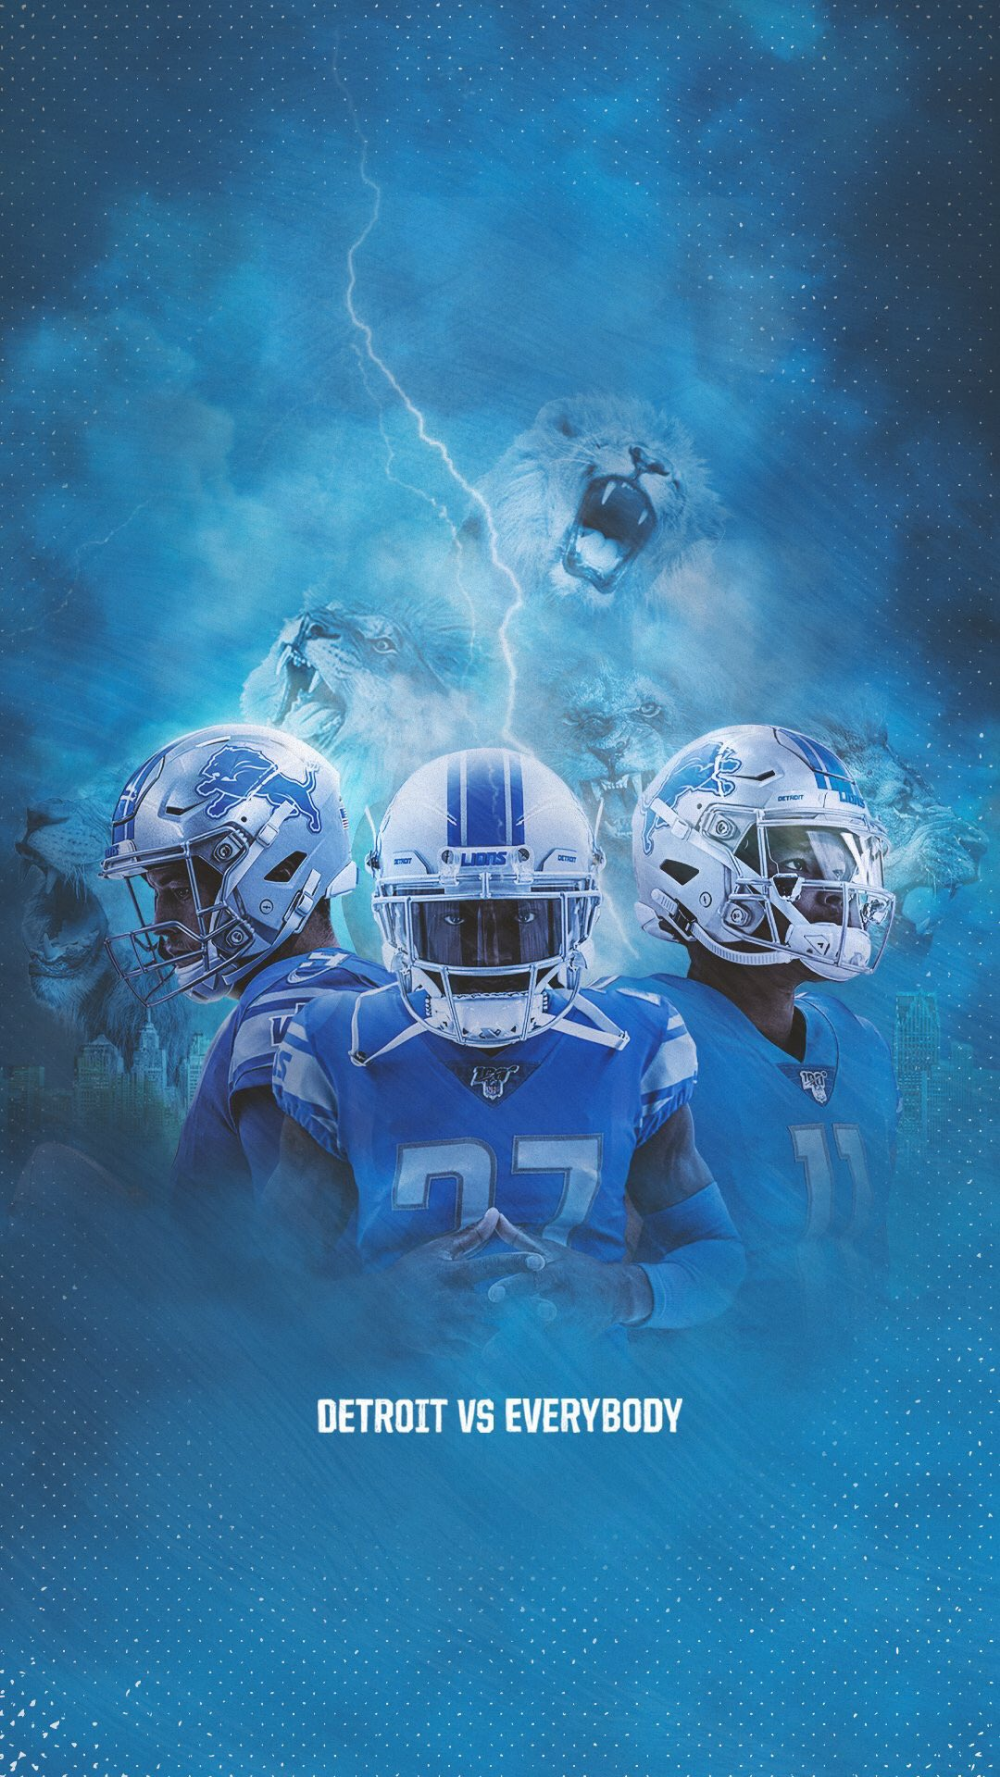 Beautiful Nfl Football Wallpaper Download Free Hd 4k Wallpapers Background Images In 2020 Detroit Lions Wallpaper Sports Wallpapers Detroit Lions